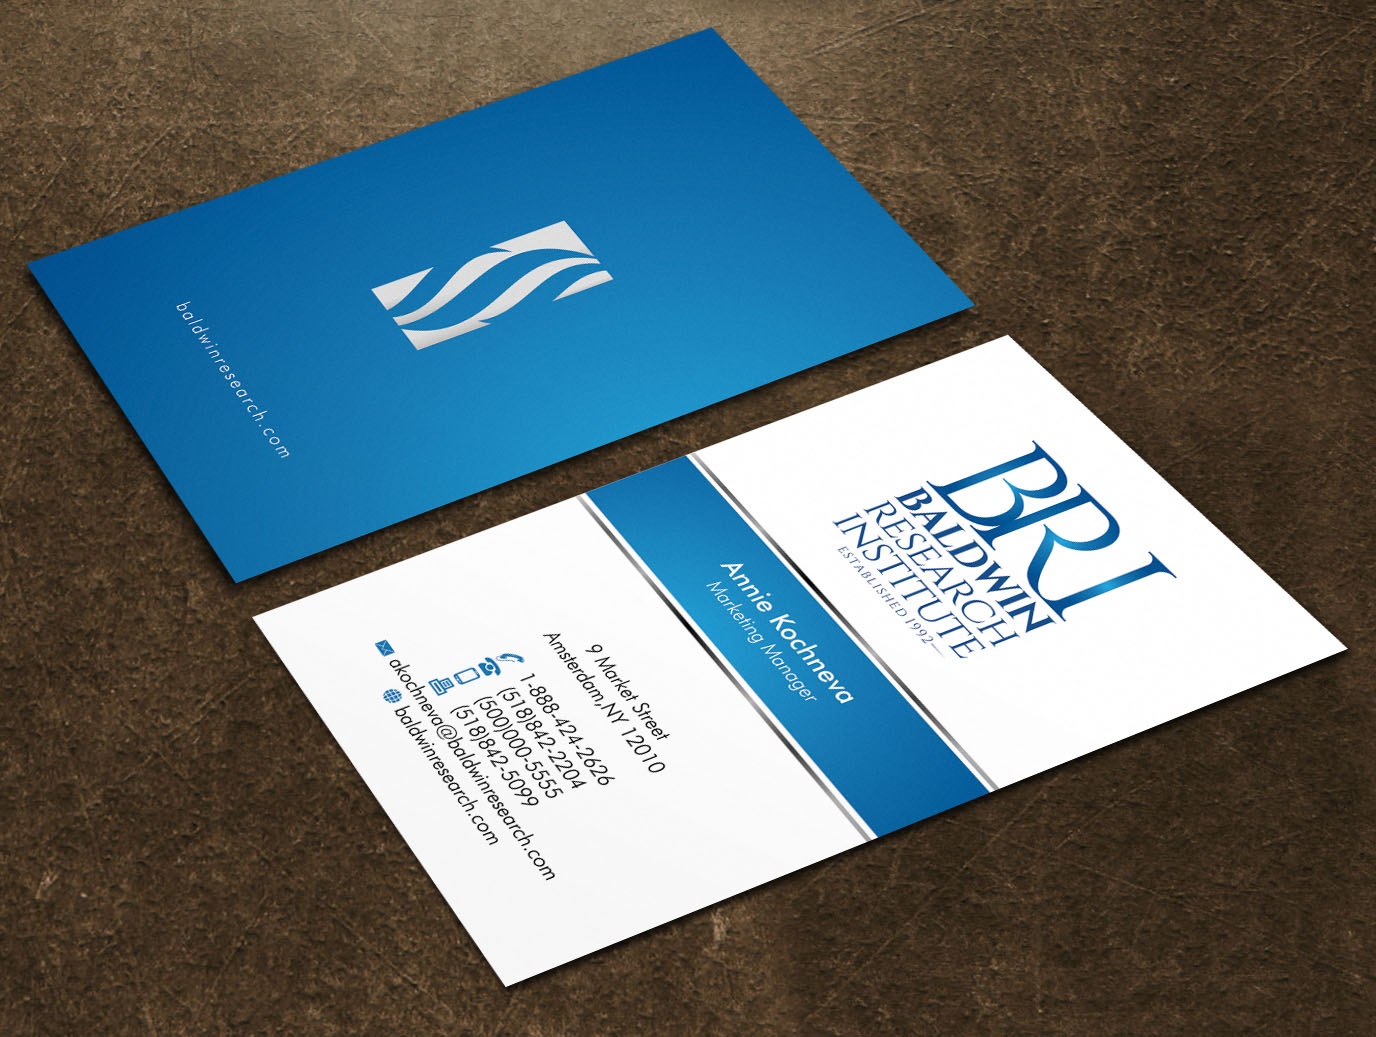 Stationery for a Research Organization ( logo provided) - Health